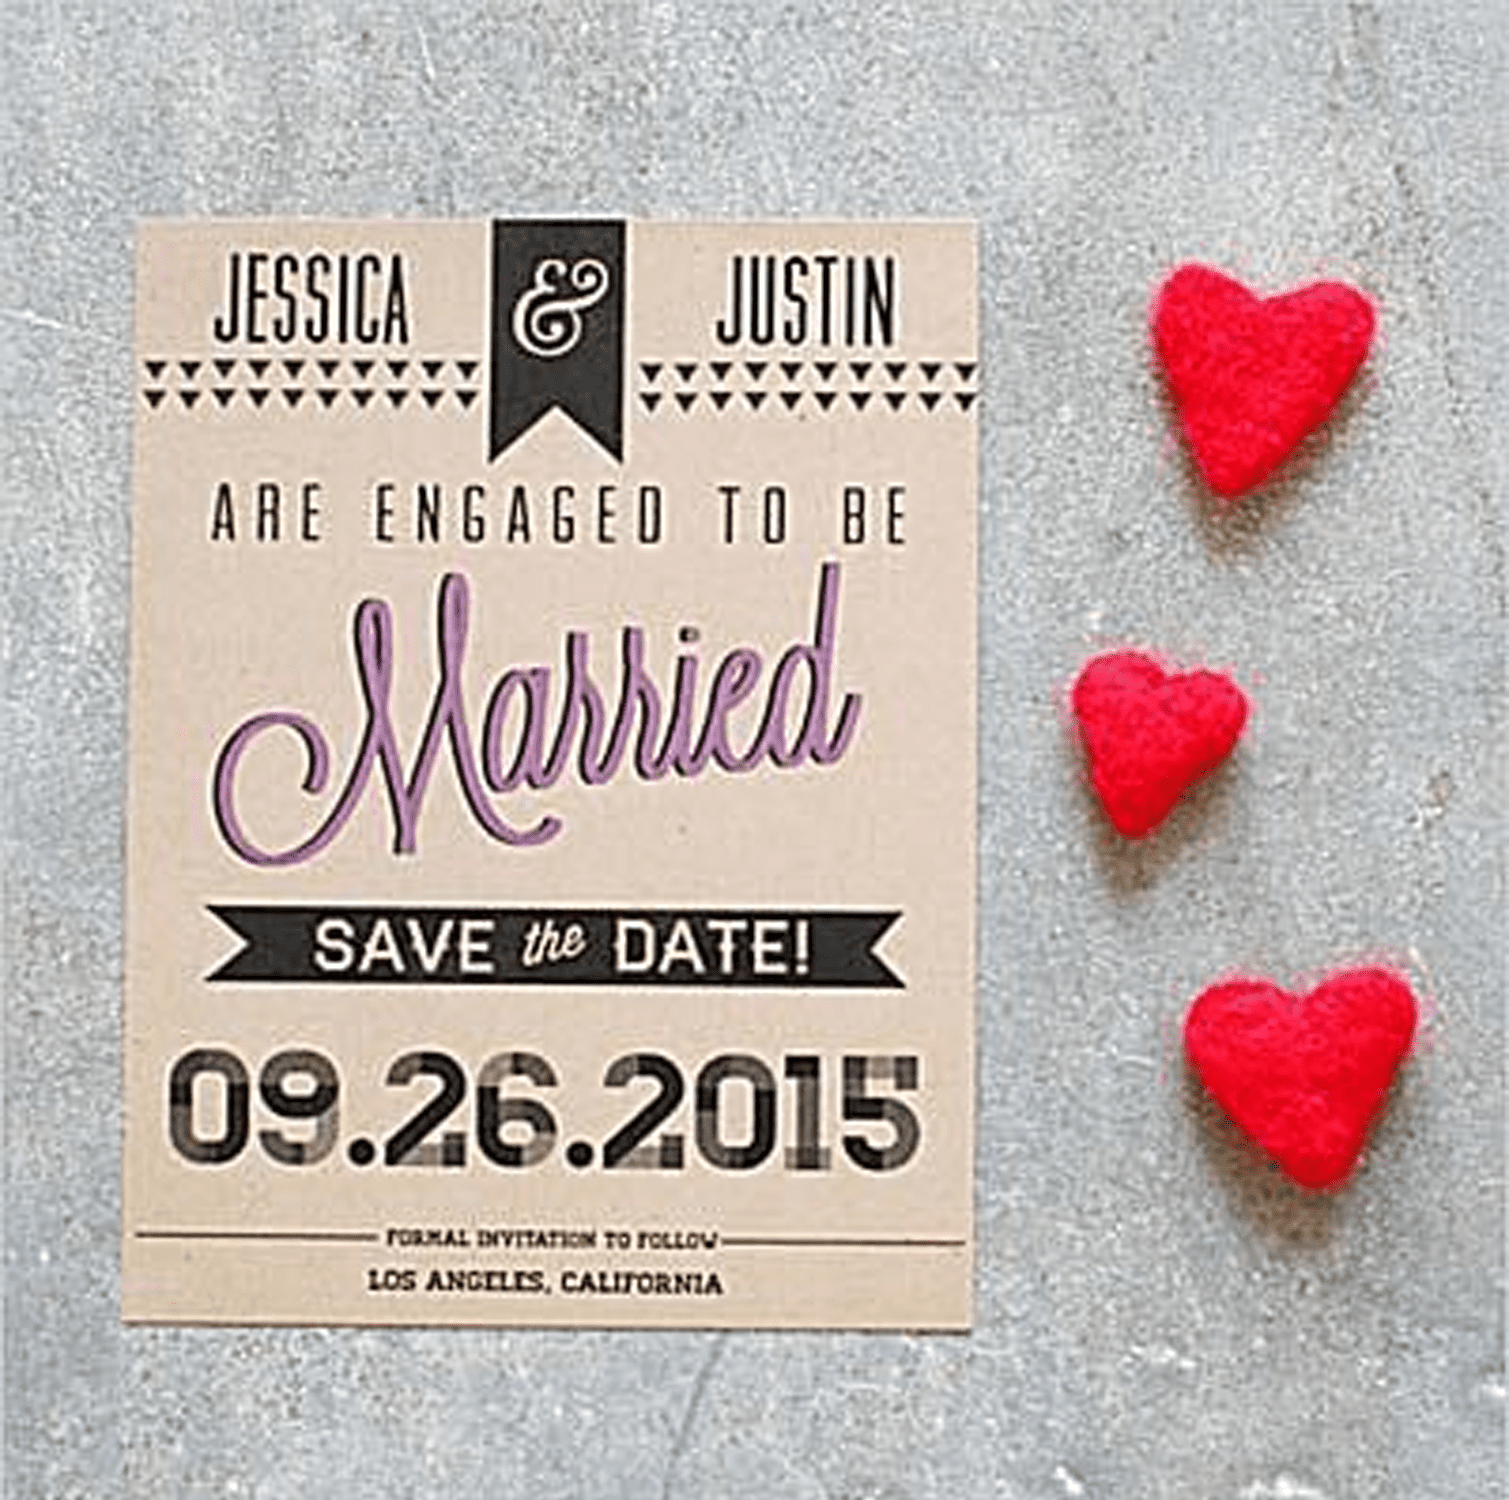 picture of a save the date card with red hearts